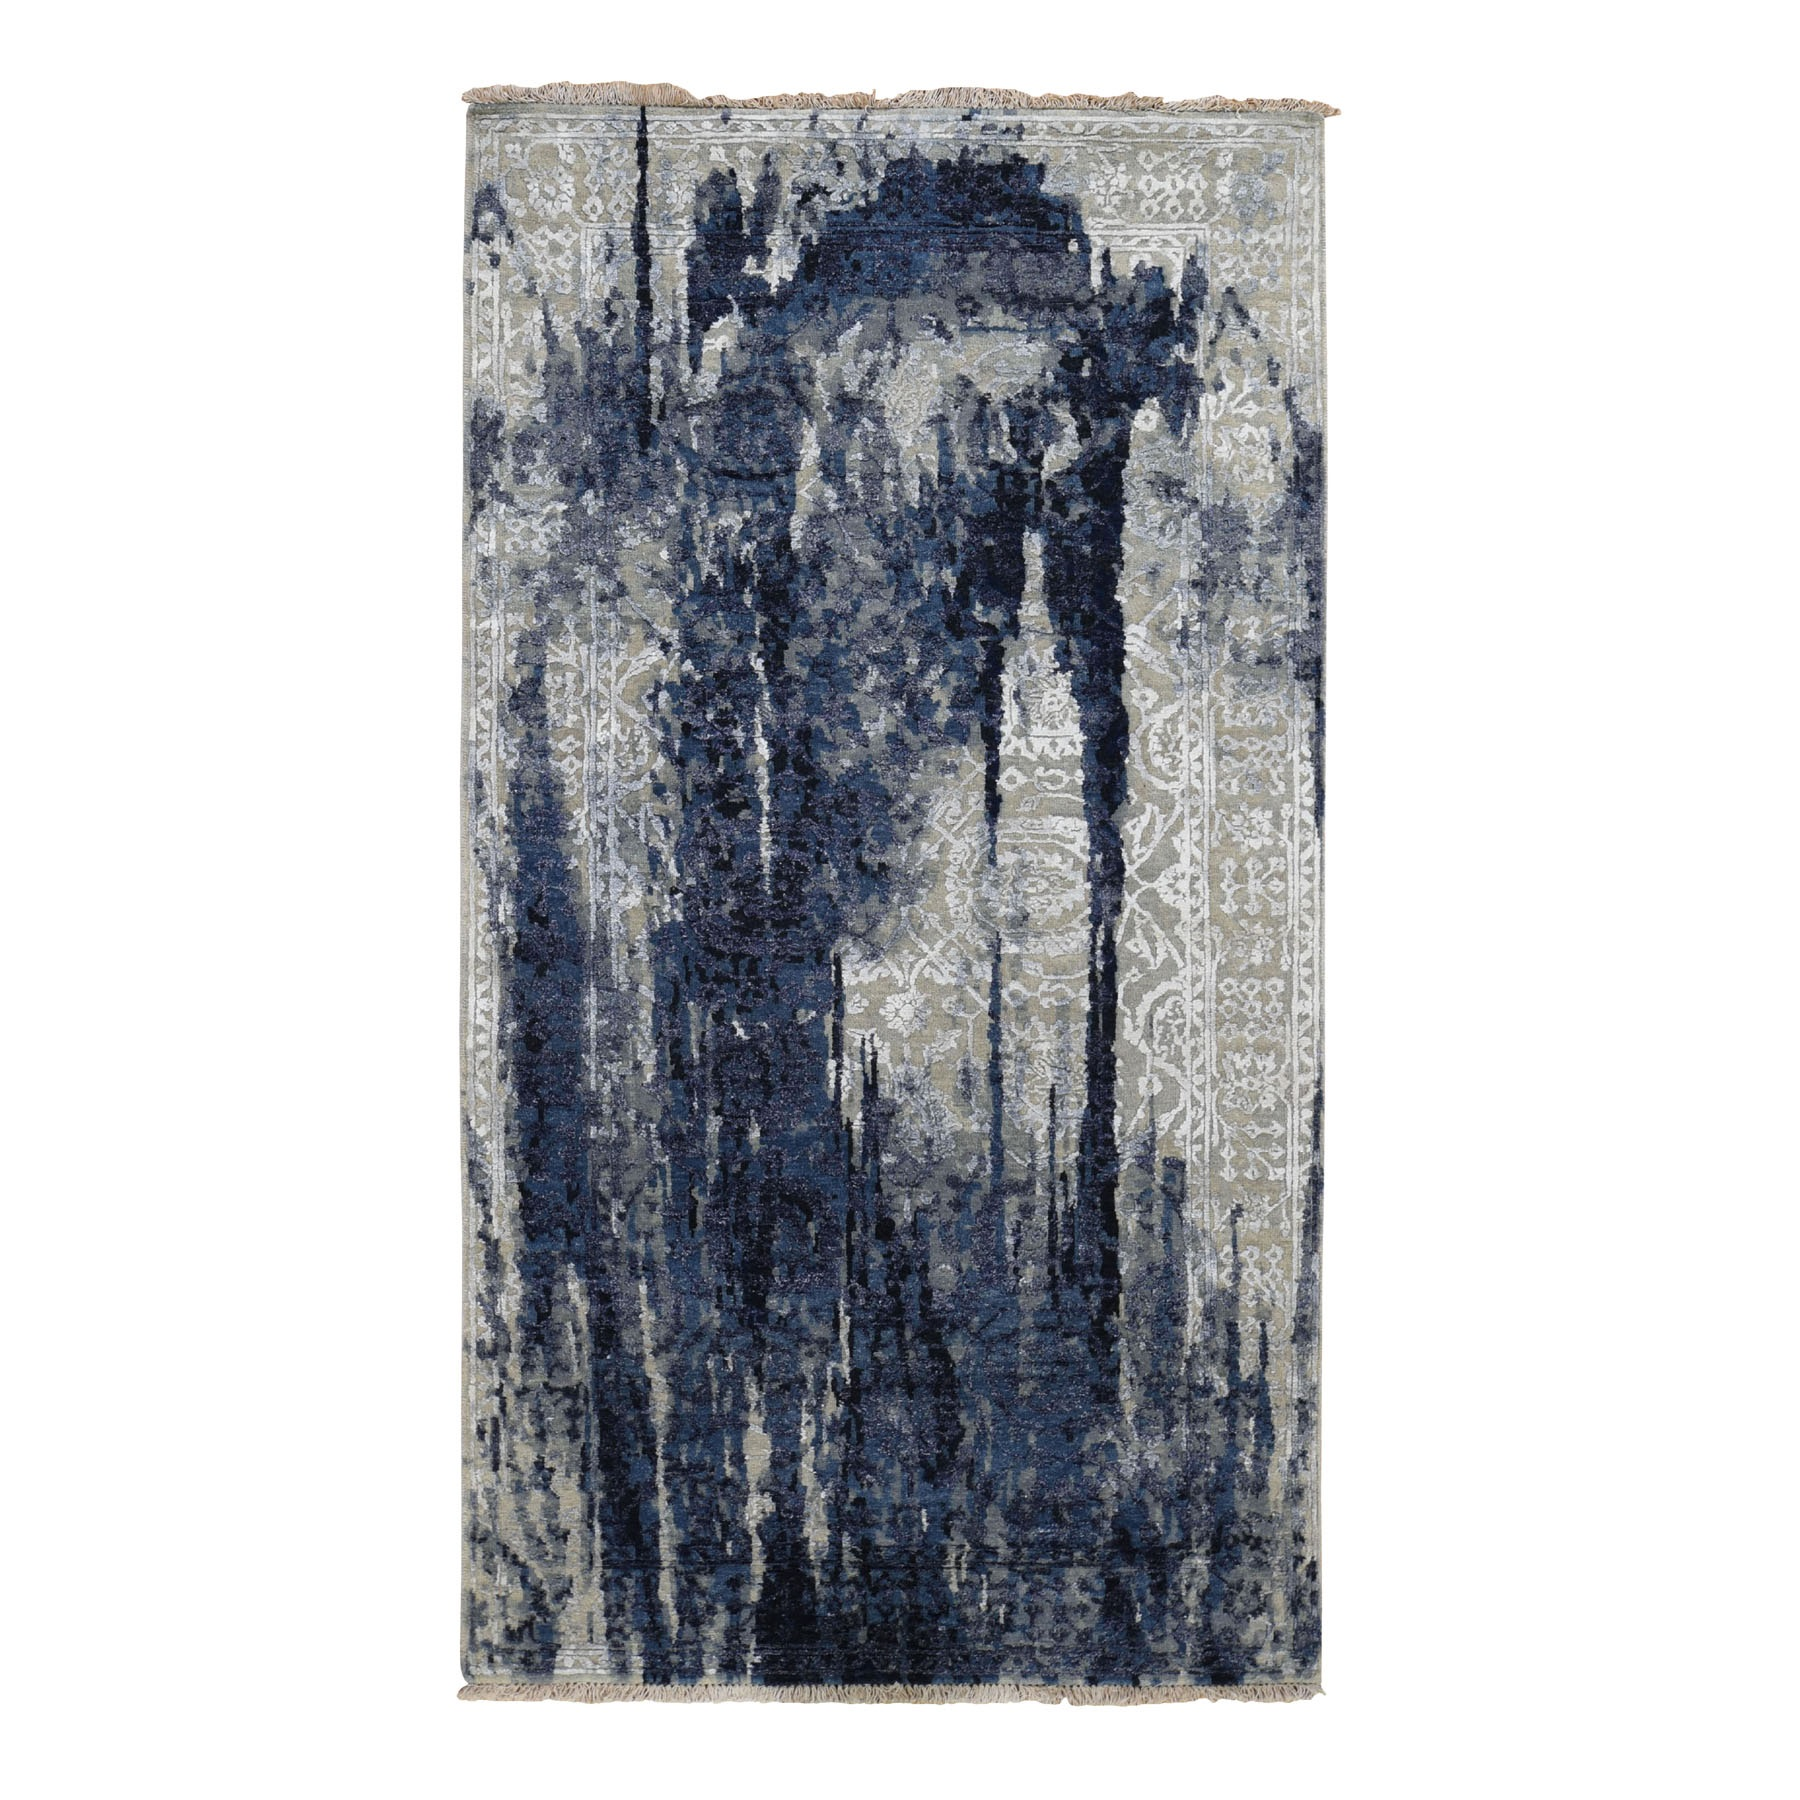 4'X8' Gallery Size Wool And Silk Shibori Design Tone On Tone Hand Knotted Oriental Rug moad8cad